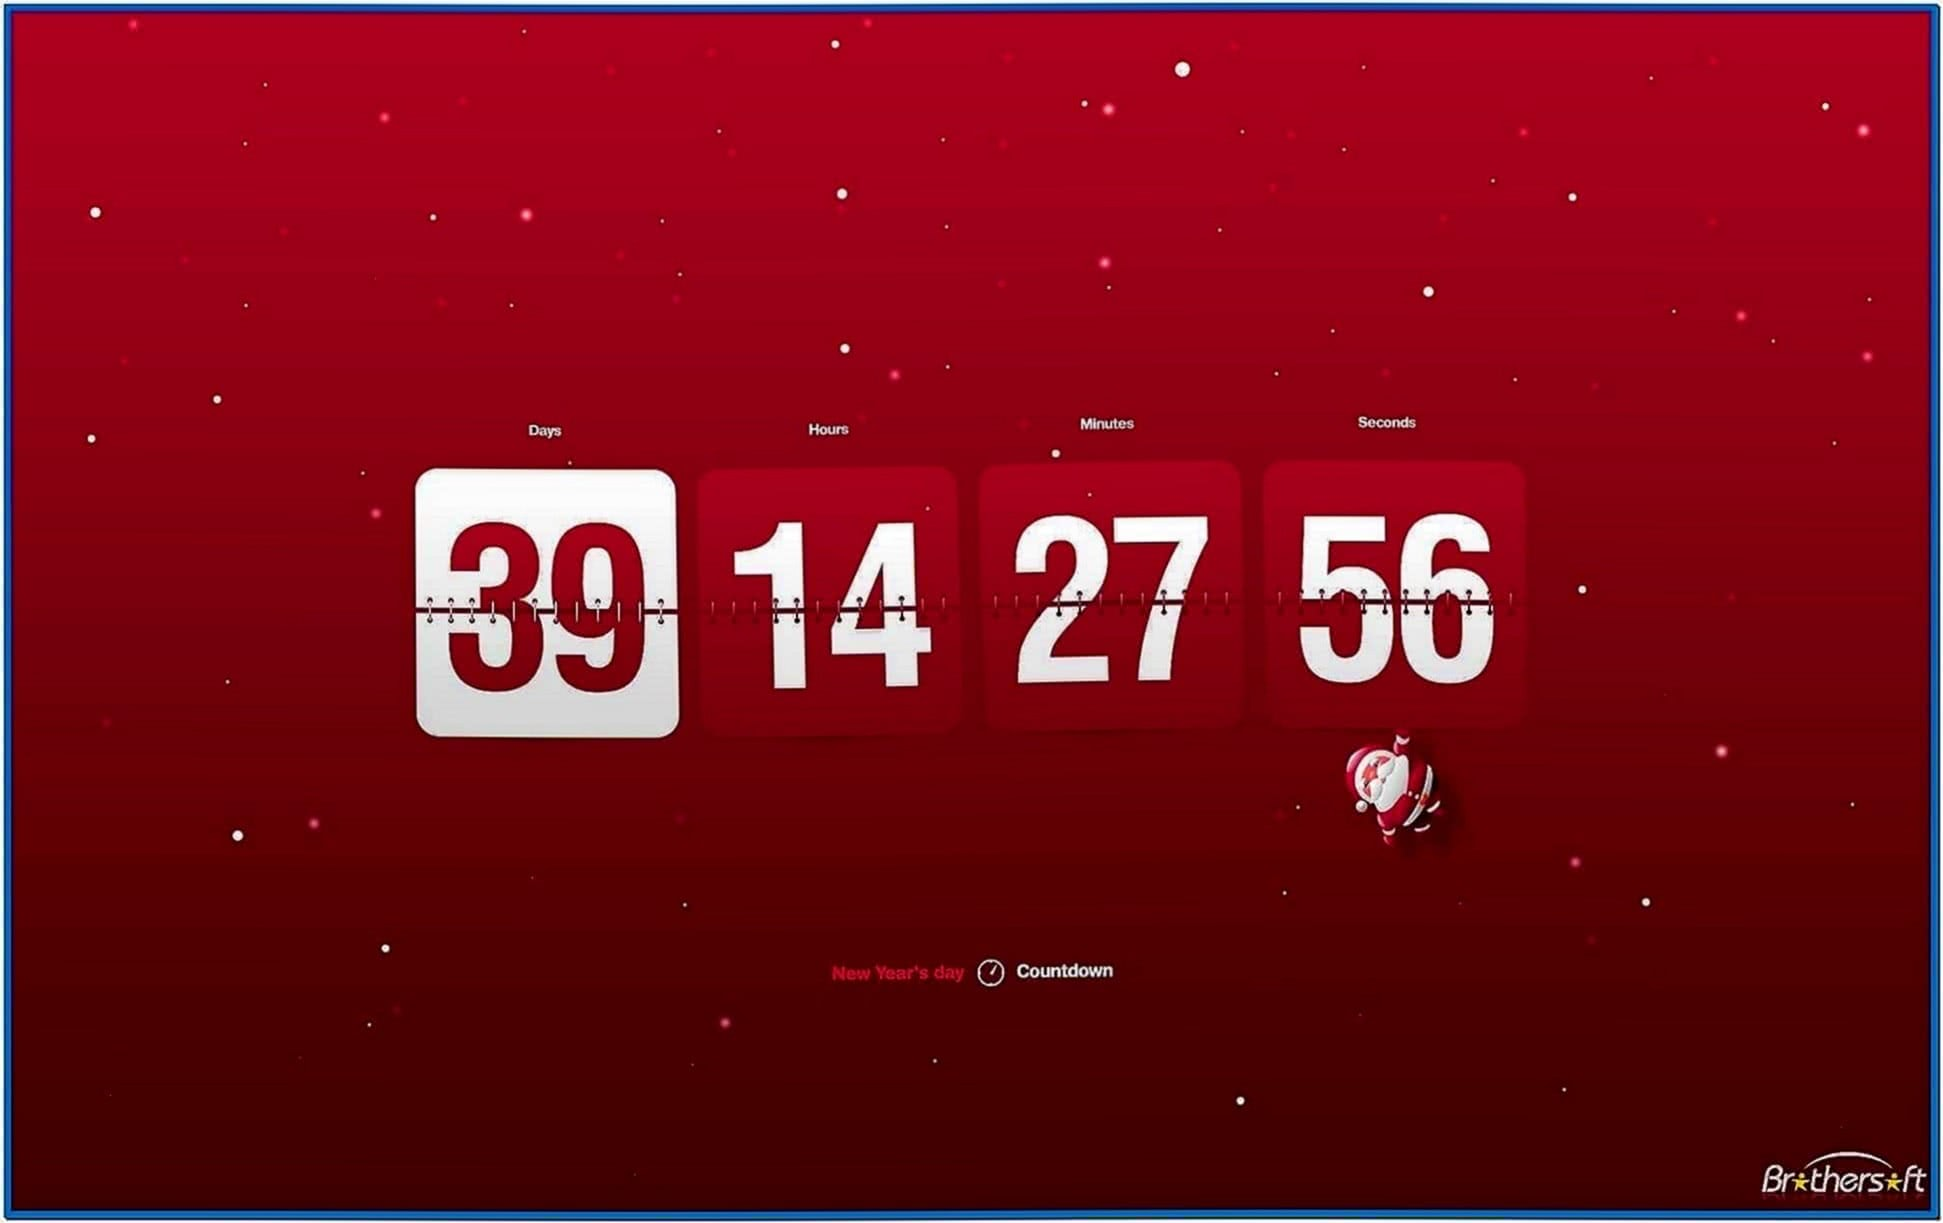 Countdown Clock to Christmas Screensavers